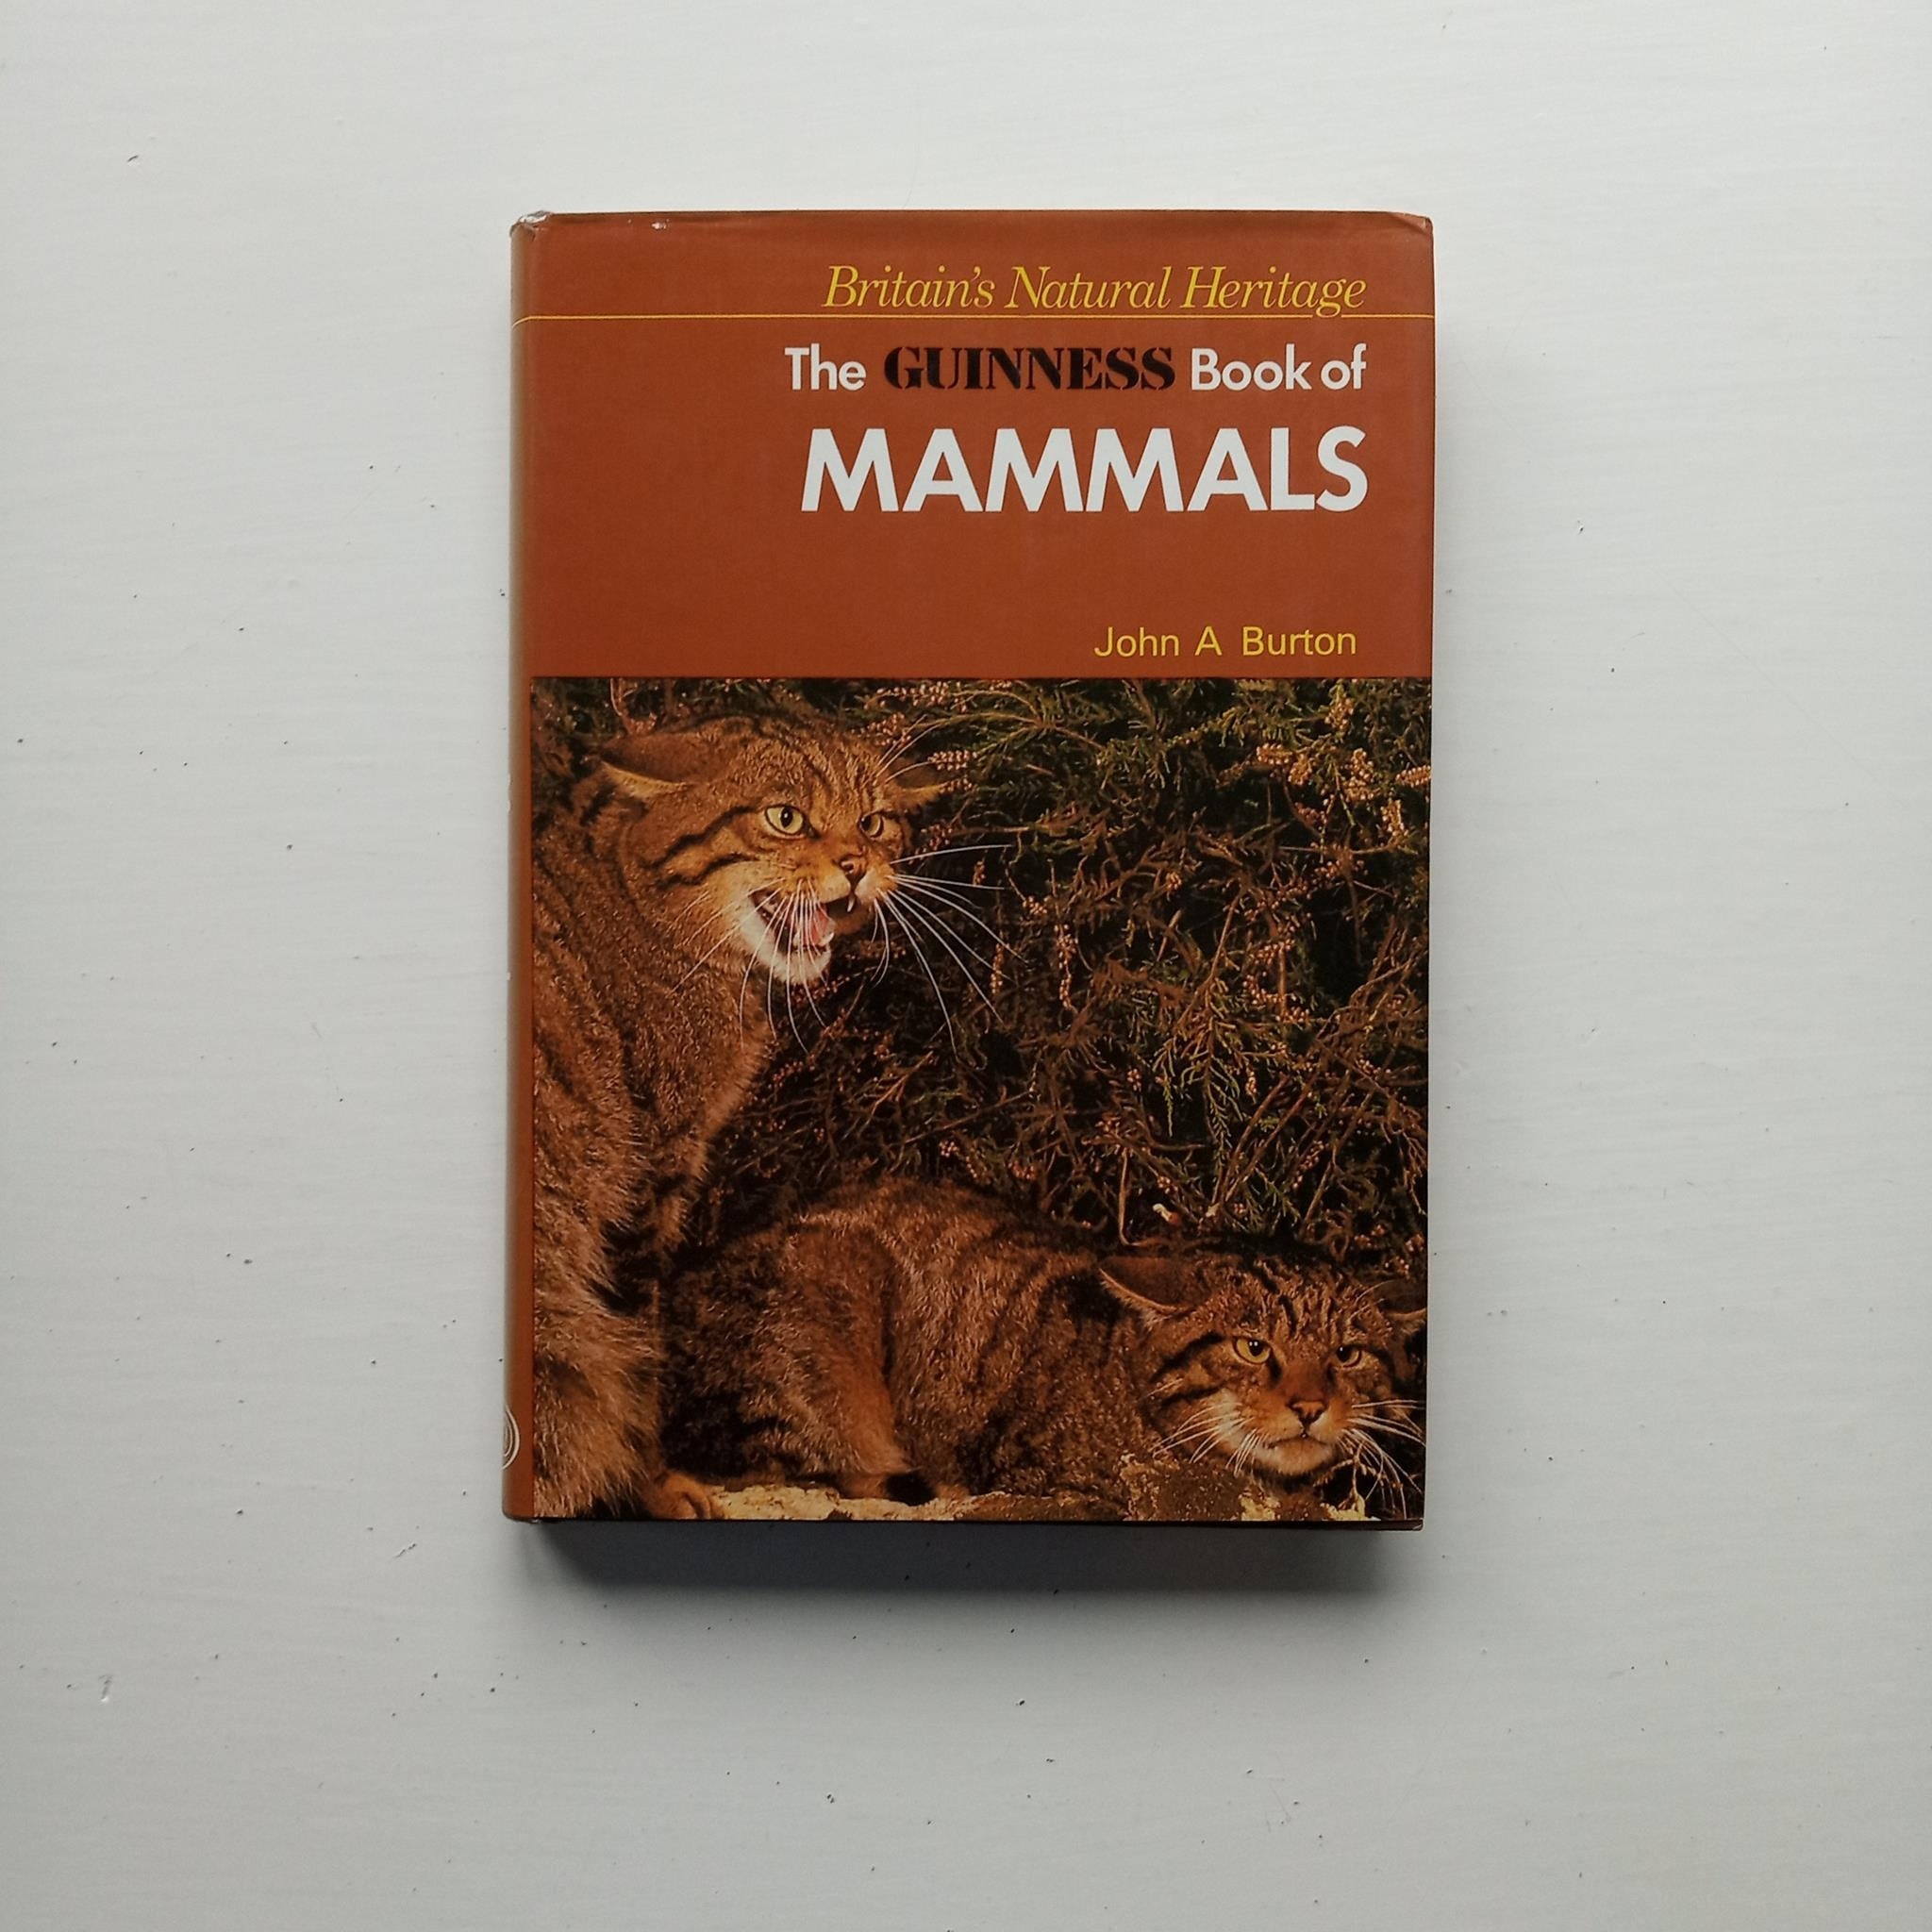 The Guinness Book of Mammals by John A Burton